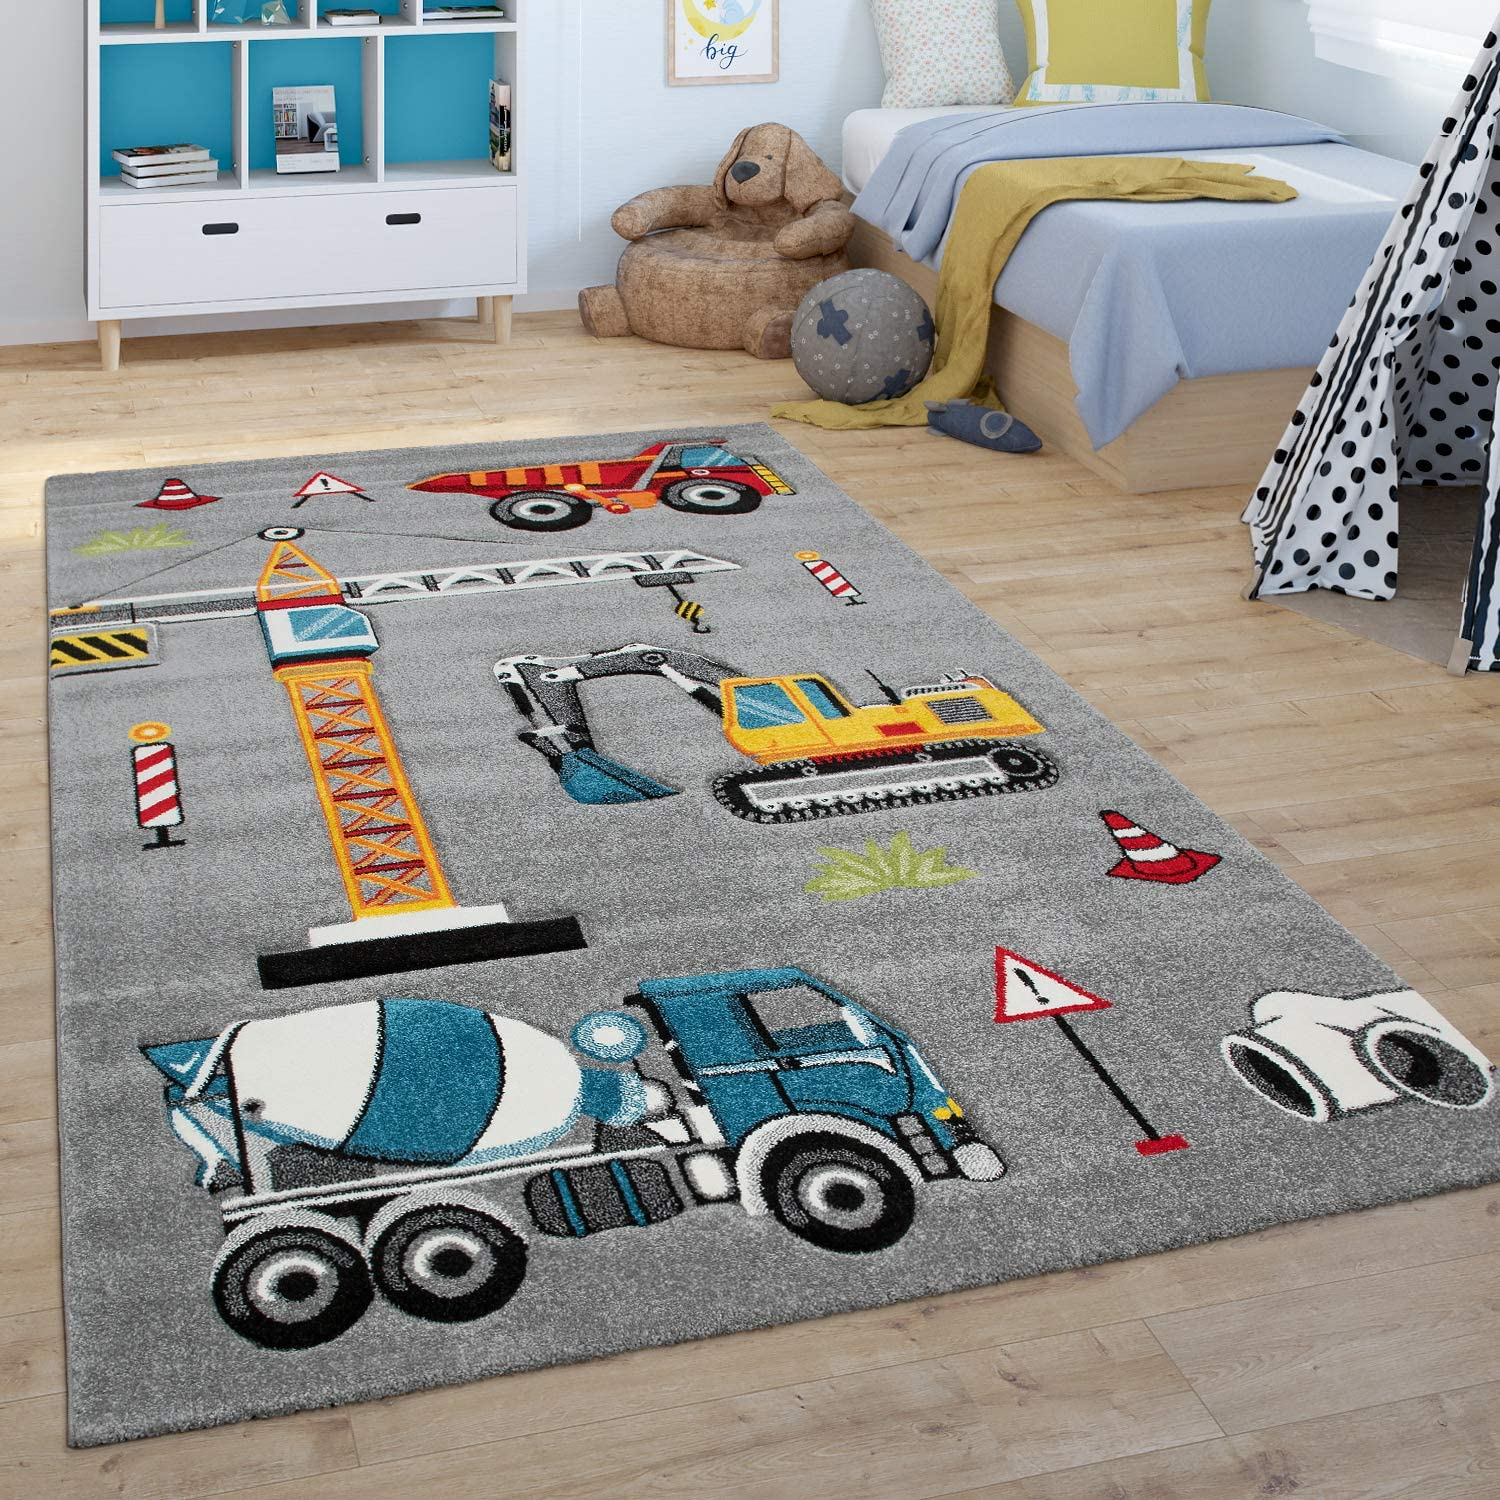 Grey Paco Home Childrens Rug Building Site Play Rug For Childrens Bedroom Digger Crane Size:80x150 cm